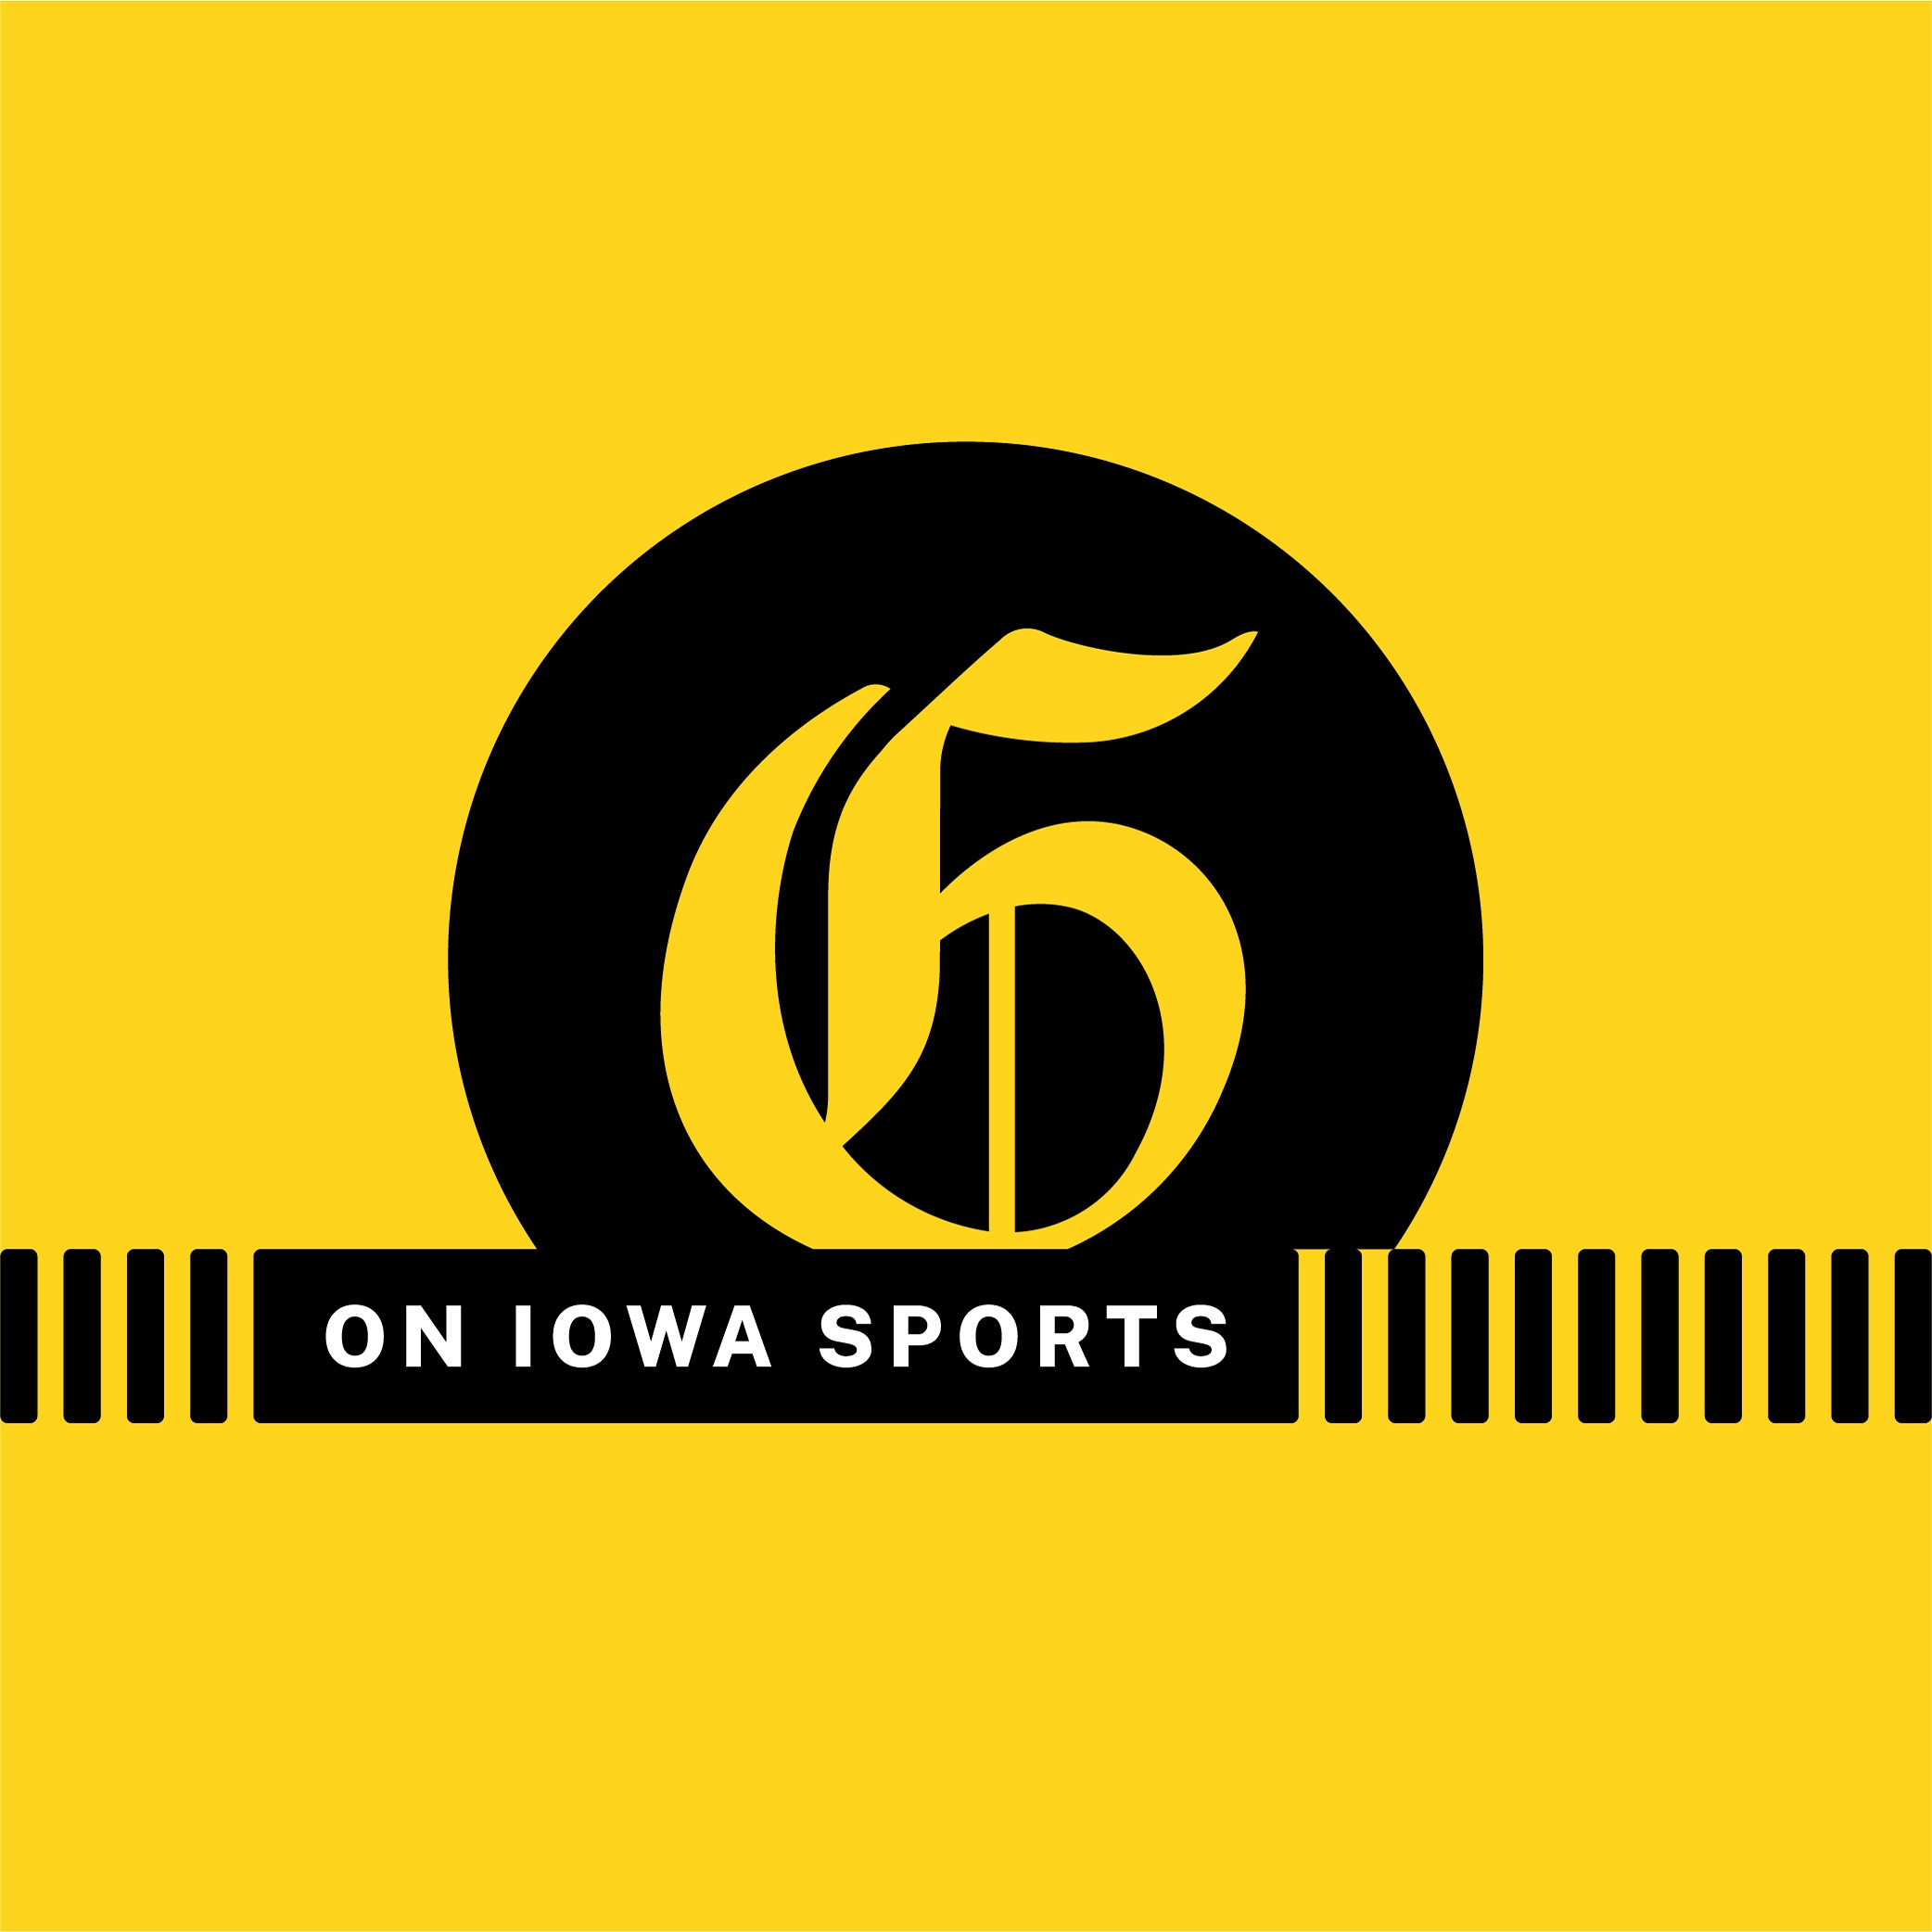 Artwork for podcast On Iowa Sports